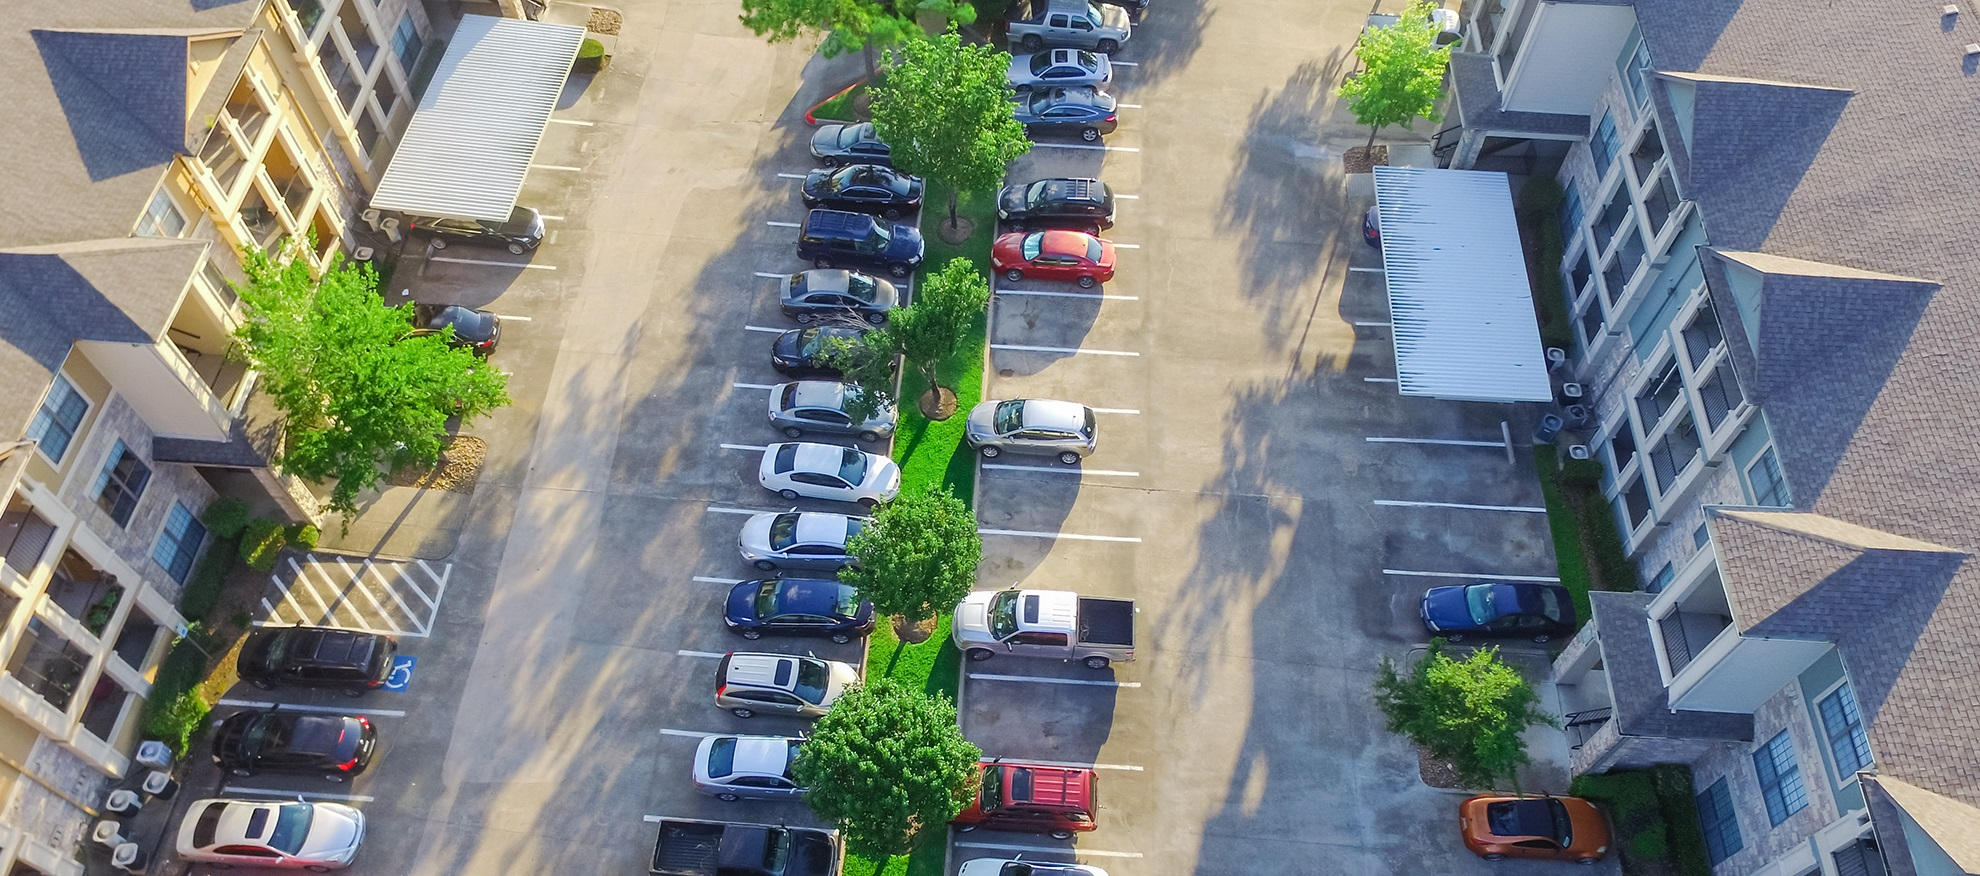 3 Reasons to Use LPR Technology in Parking Lots